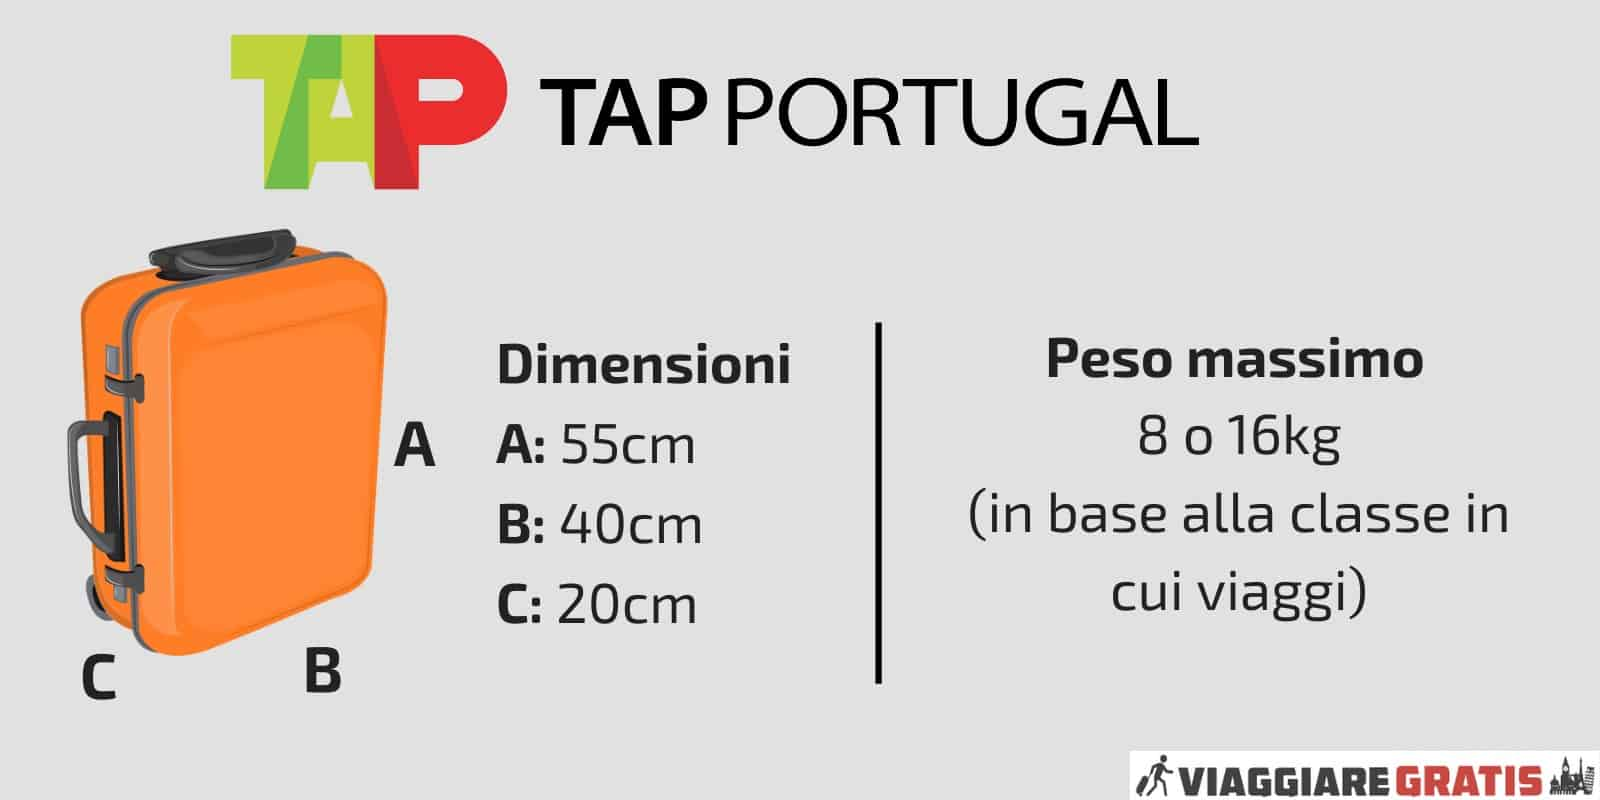 TAP Airlines Portugal